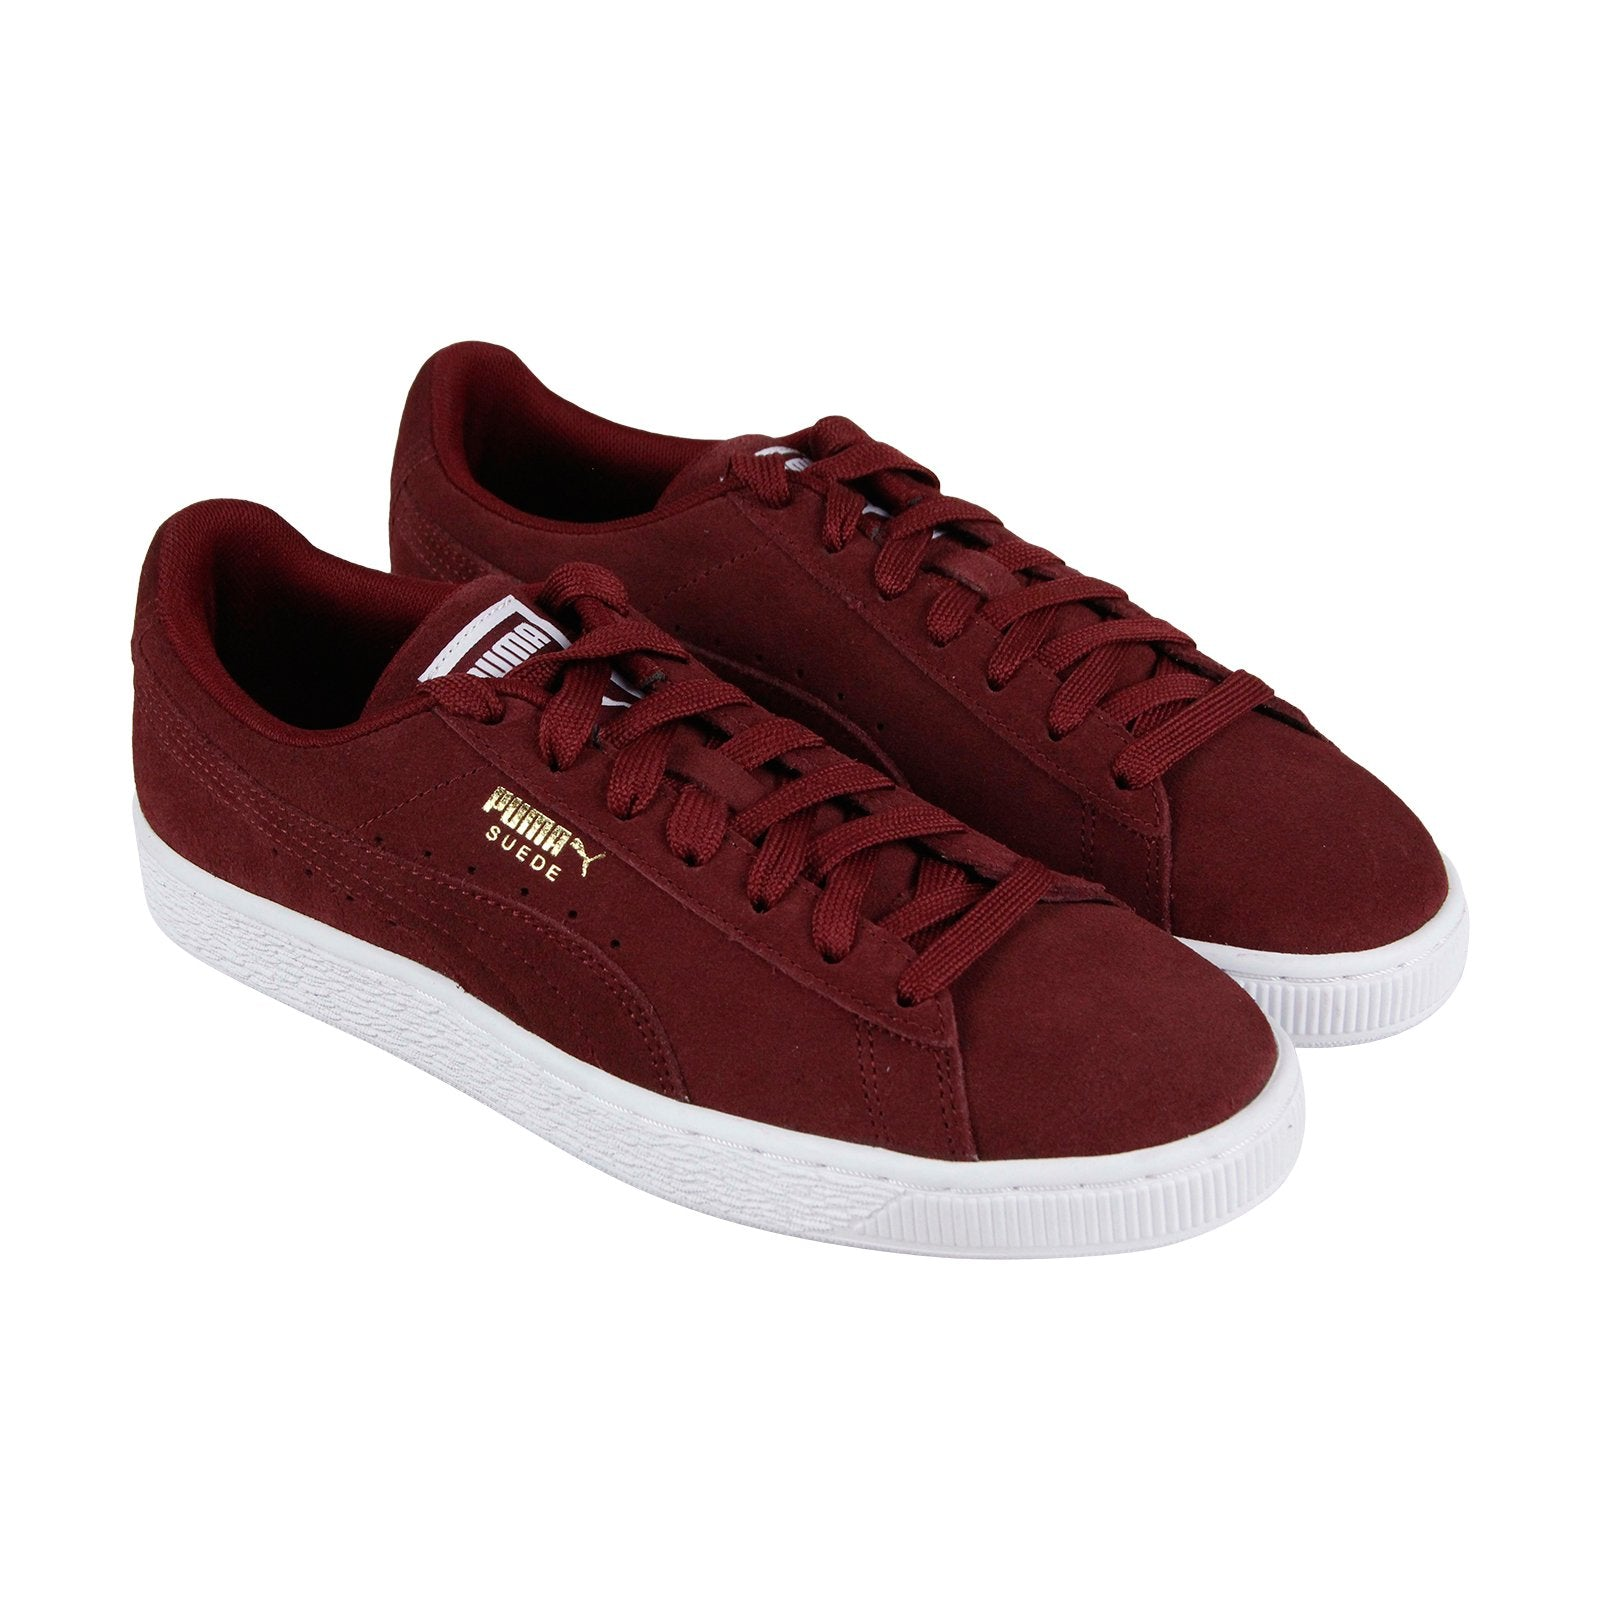 best sneakers 03c71 8ae4a Puma Suede Classic + Mens Red Suede Low Top Lace Up Sneakers Shoes